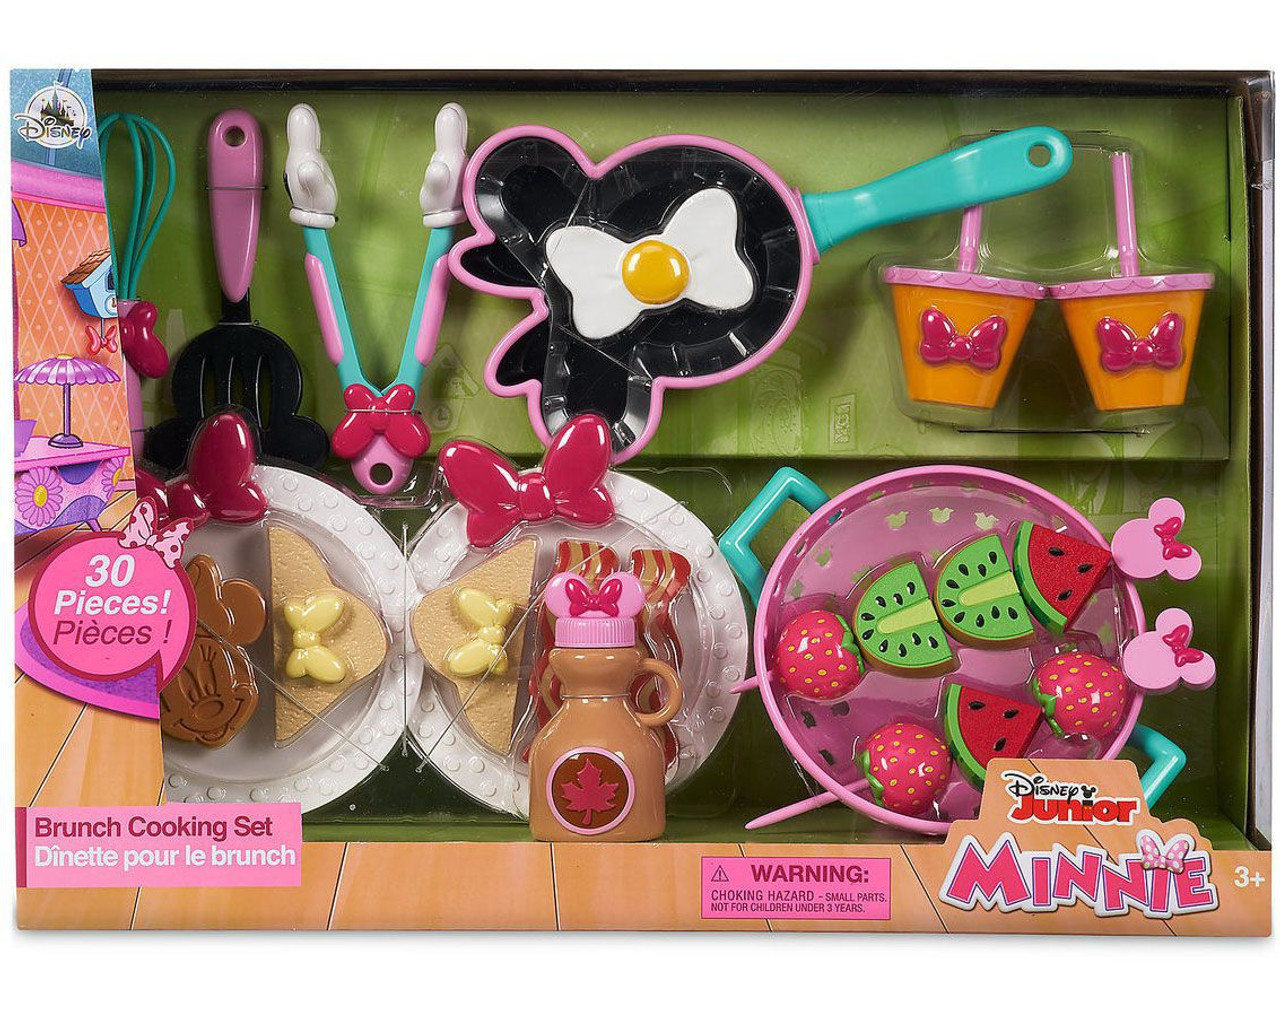 Disney Minnie Mouse 2018 Brunch Cooking Set Exclusive Playset